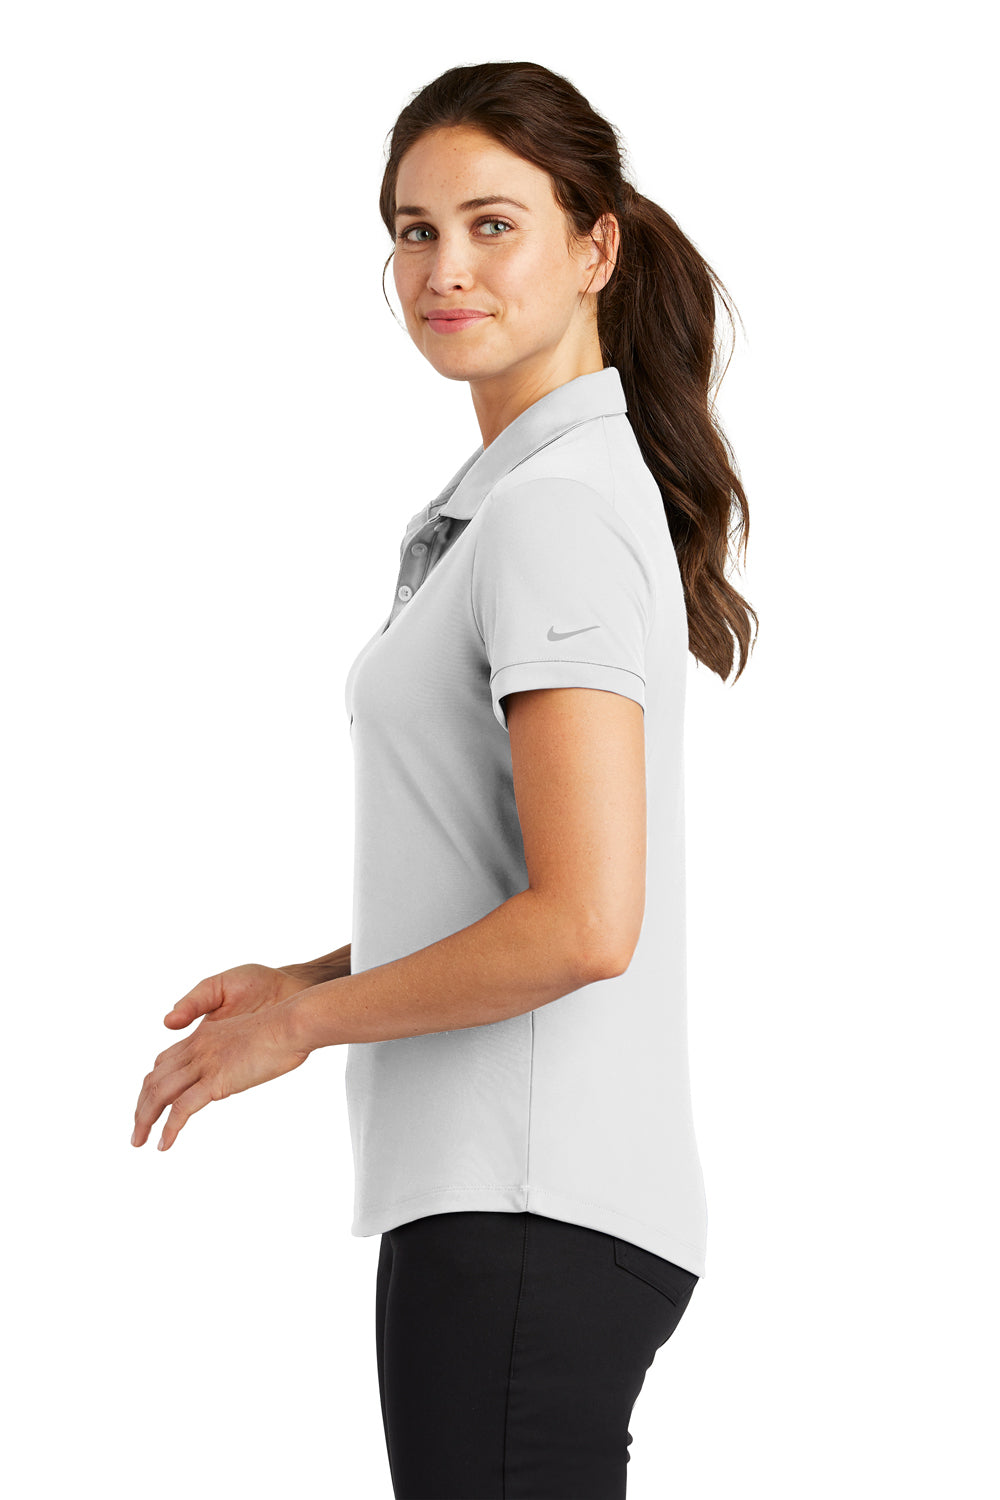 Nike 811807 Womens Players Dri-Fit Moisture Wicking Short Sleeve Polo Shirt White Side